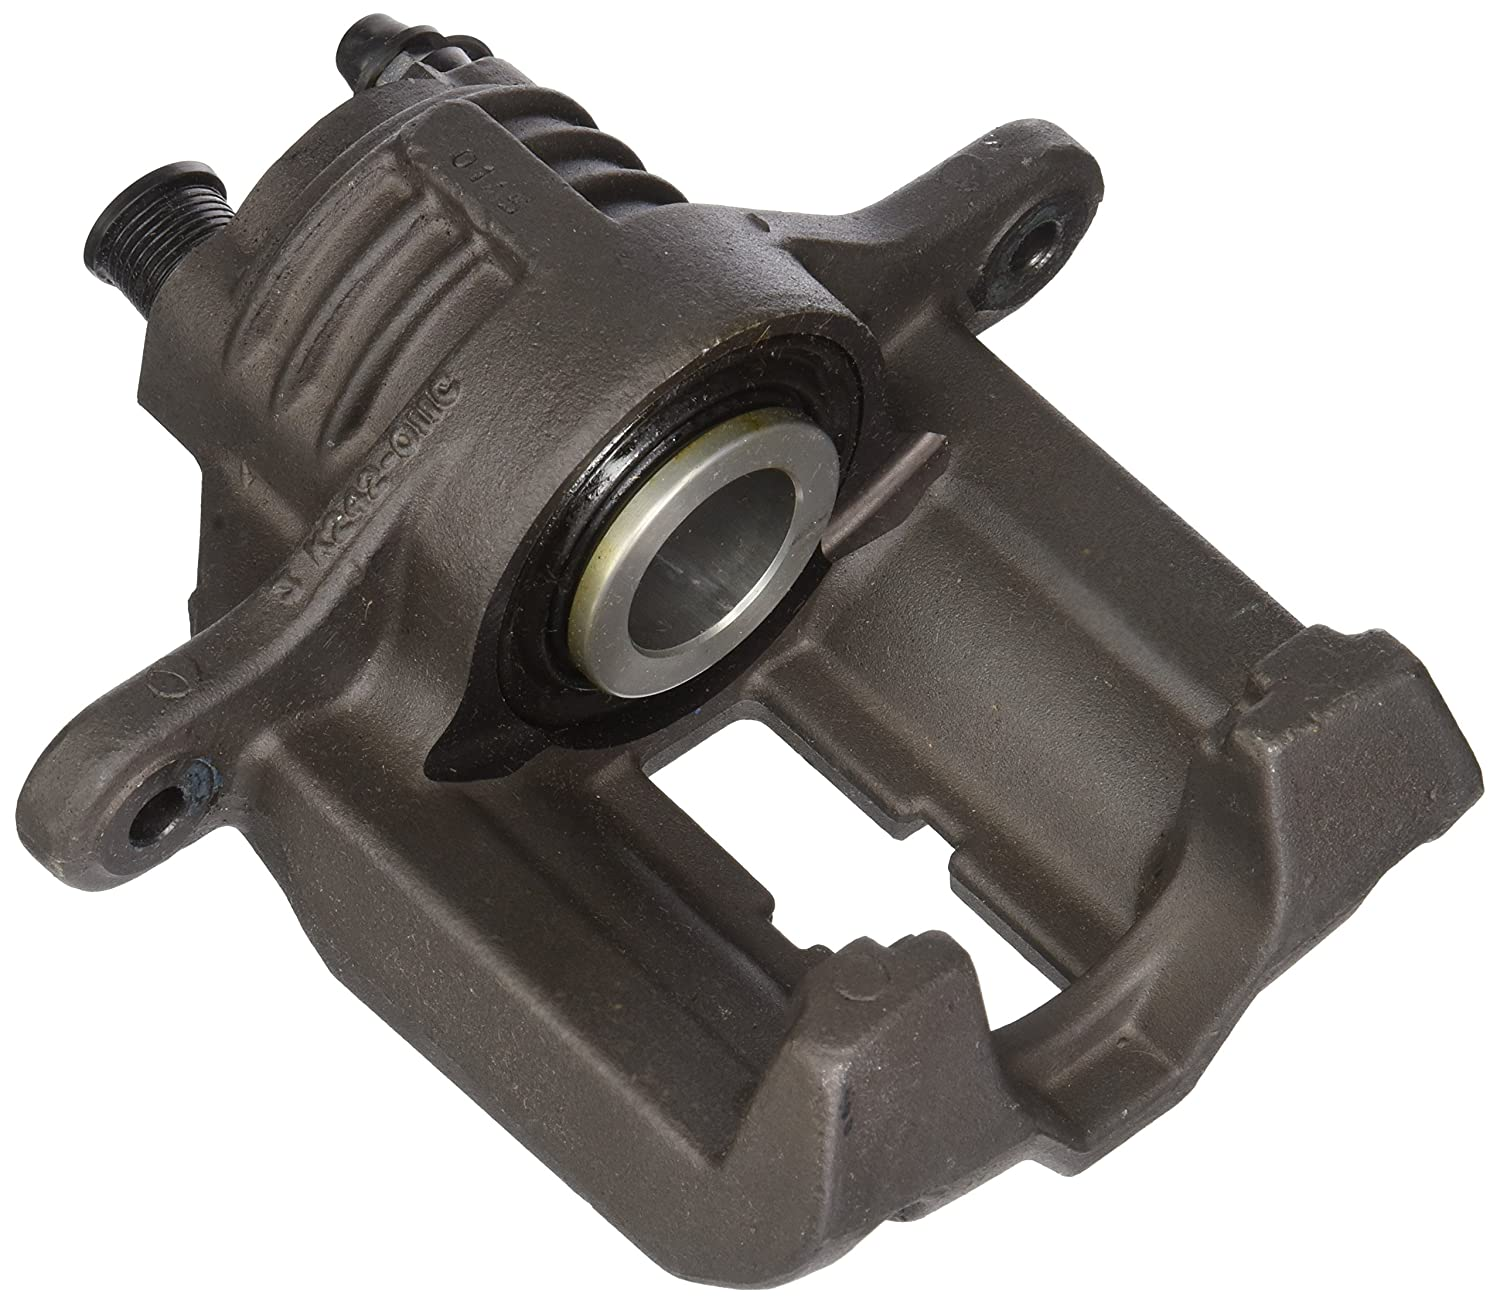 ACDelco 172-2314 GM Original Equipment Rear Passenger Side Disc Brake Caliper